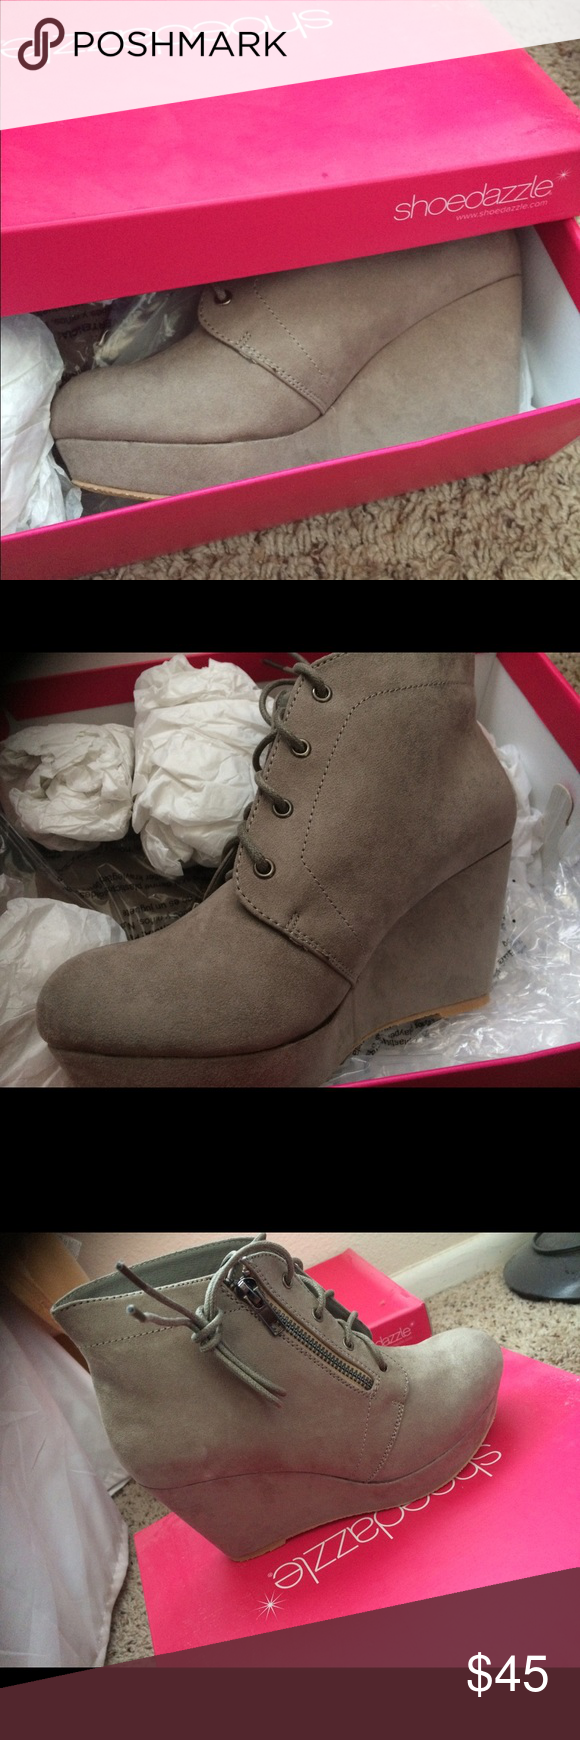 Light gray suede booties Super cute! Brand new. Never worn. I have a black pair identical and they are so comfortable! Shoe Dazzle Shoes Heels